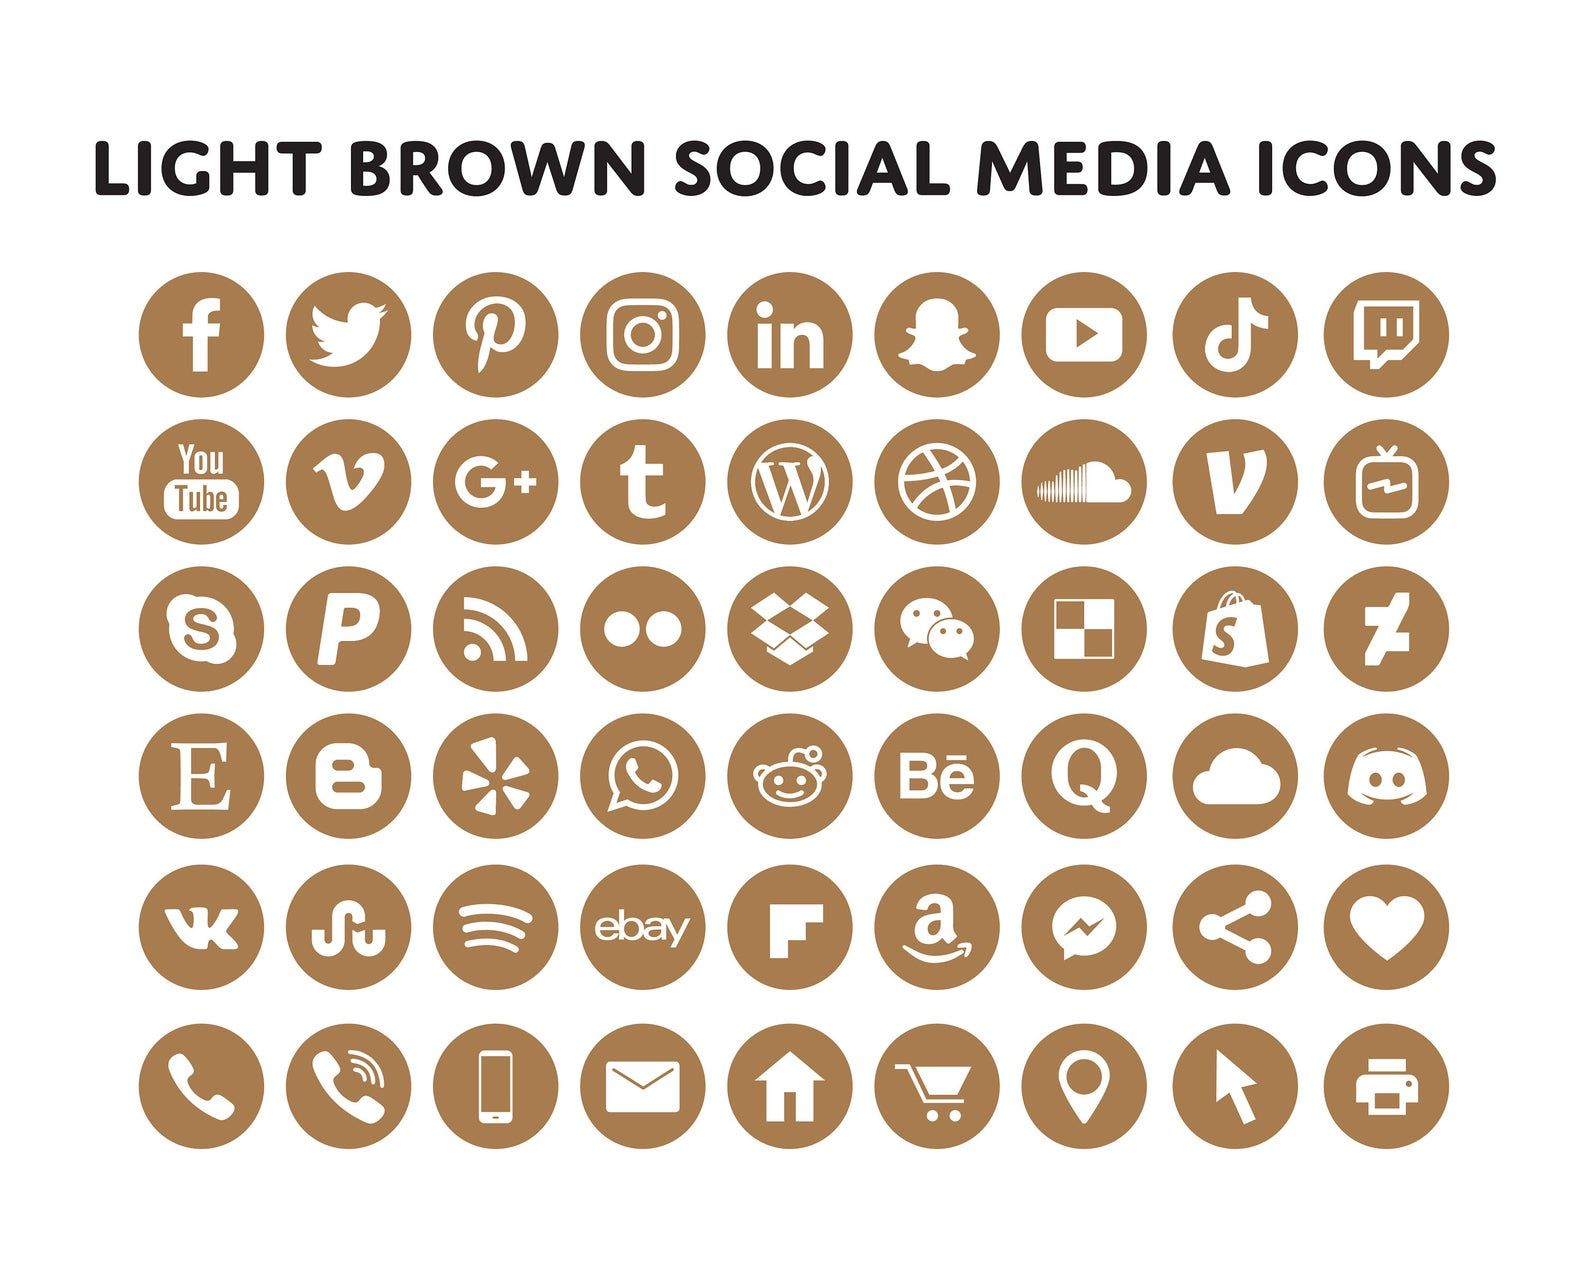 Light Brown Social Media Icons Bundle Over 200 Social Media Icons Blog Icons Email Signature Clipart Website Icons Social Media Social Media Icons Media Icon Icon